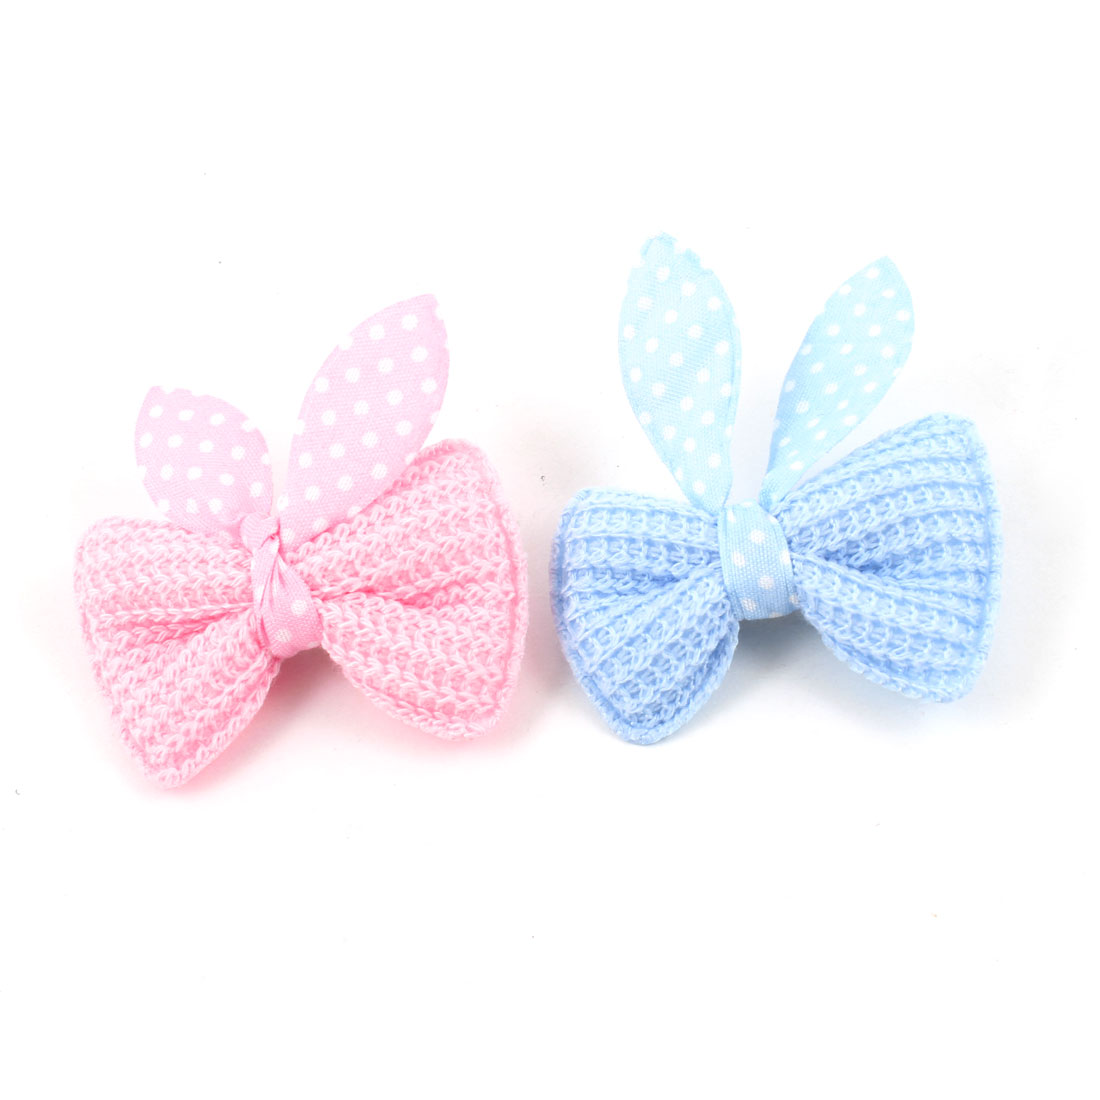 2 Pcs Pink Blue Dot Bowknot Detailing Alligator Hair Clip for Pet Puppy